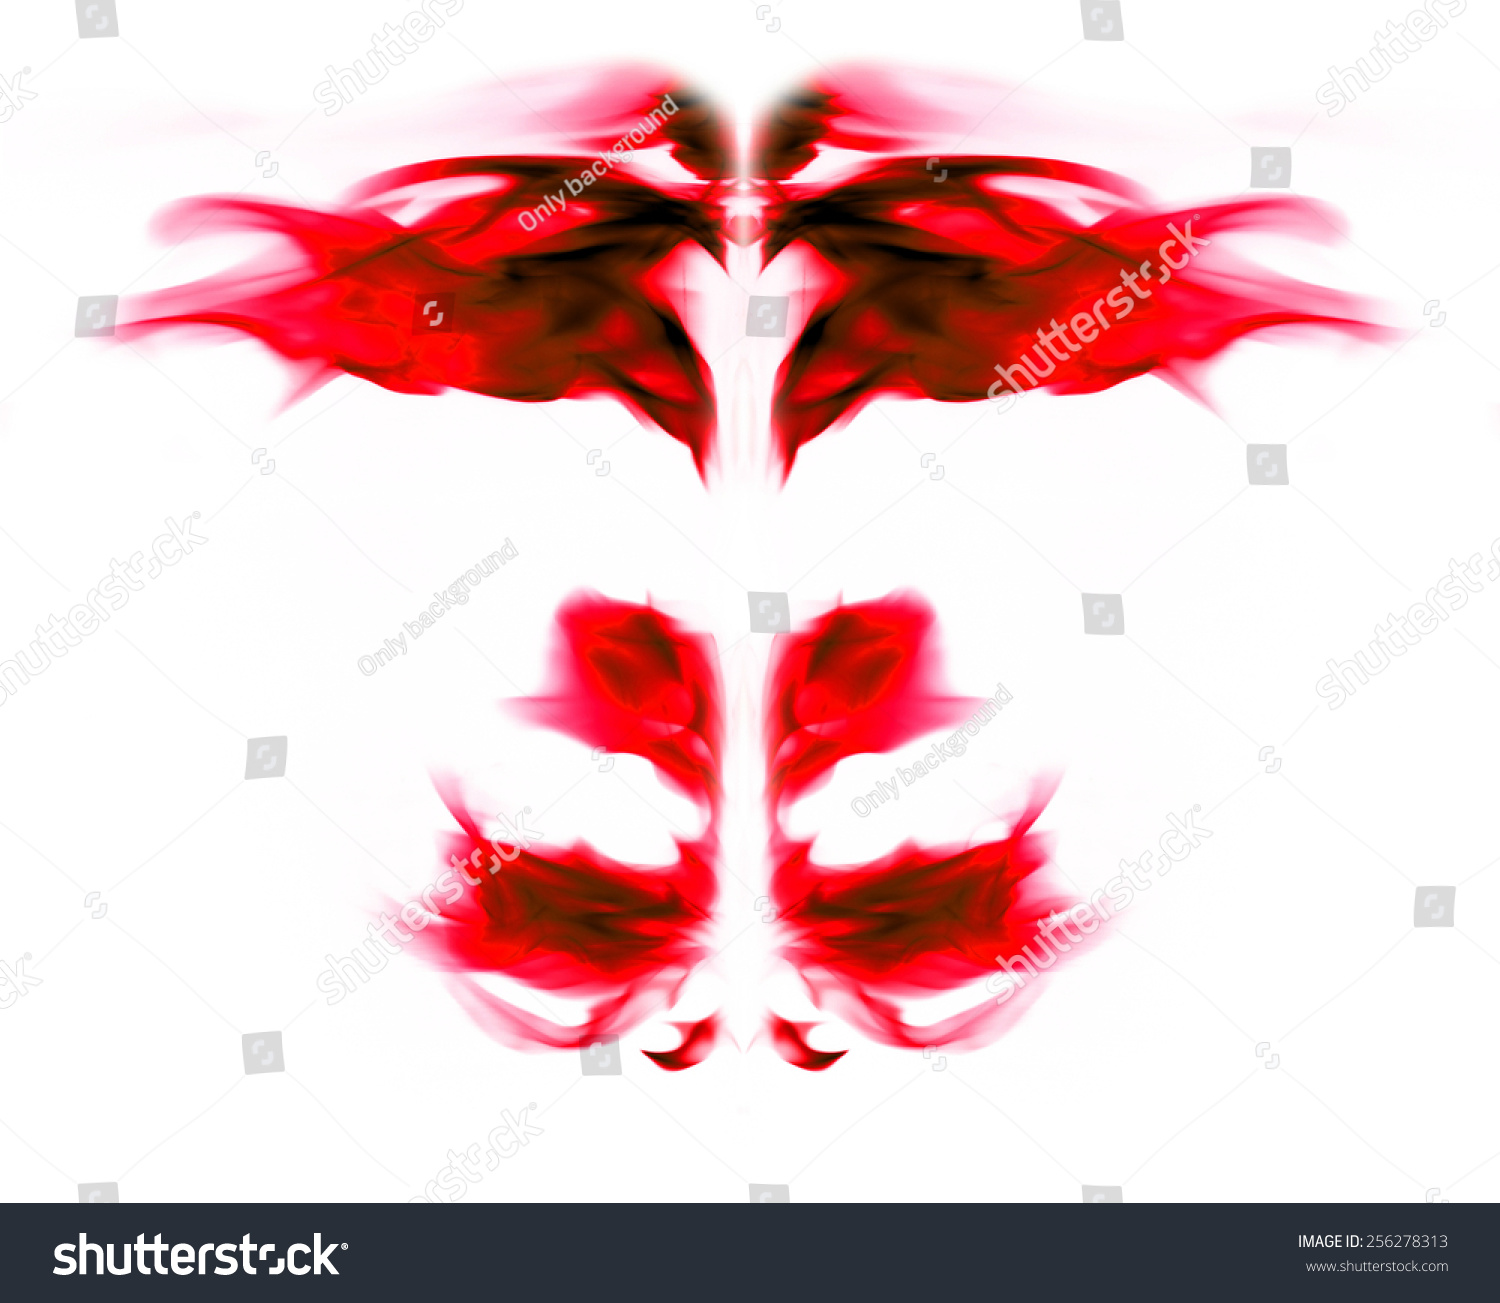 red flame graphics on a white background stock photo